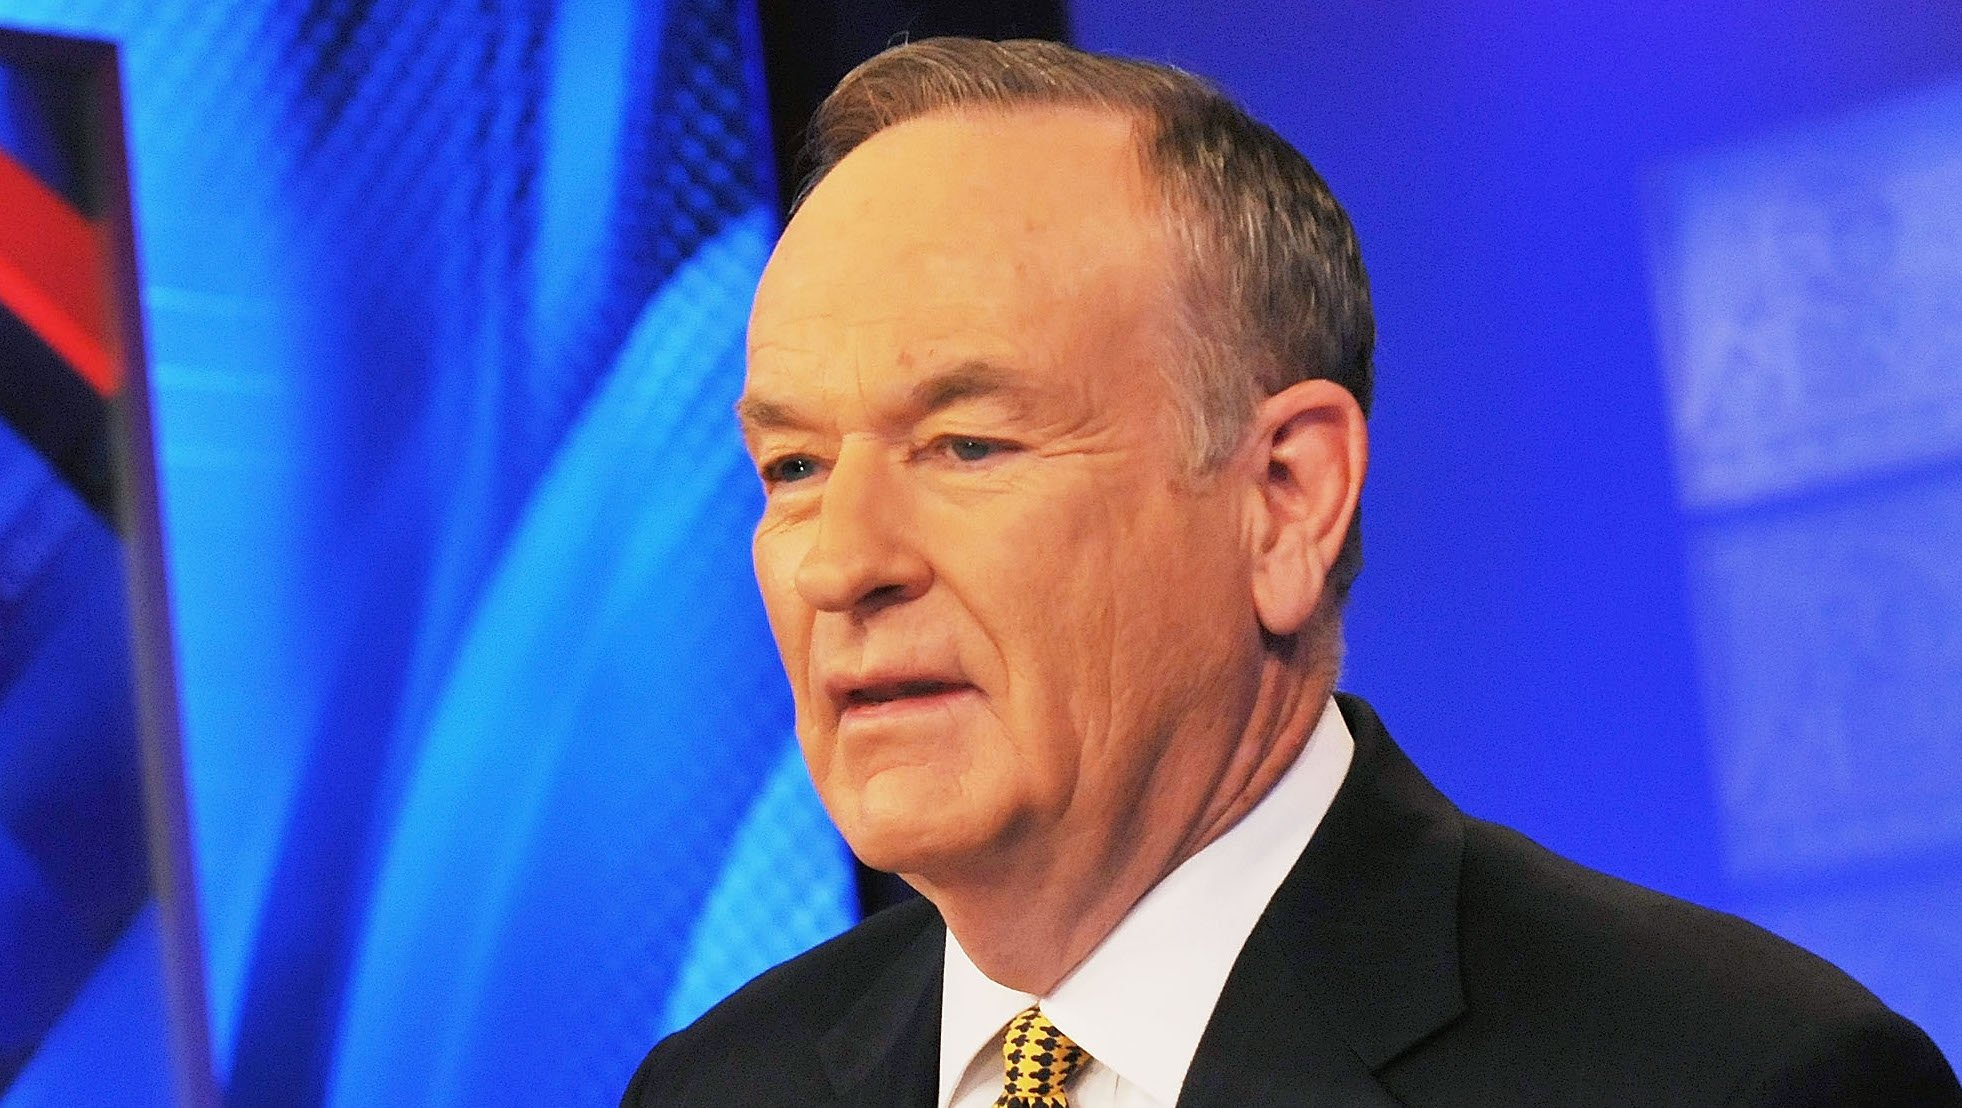 Bill O'Reilly Issues Stern Warning to President Trump